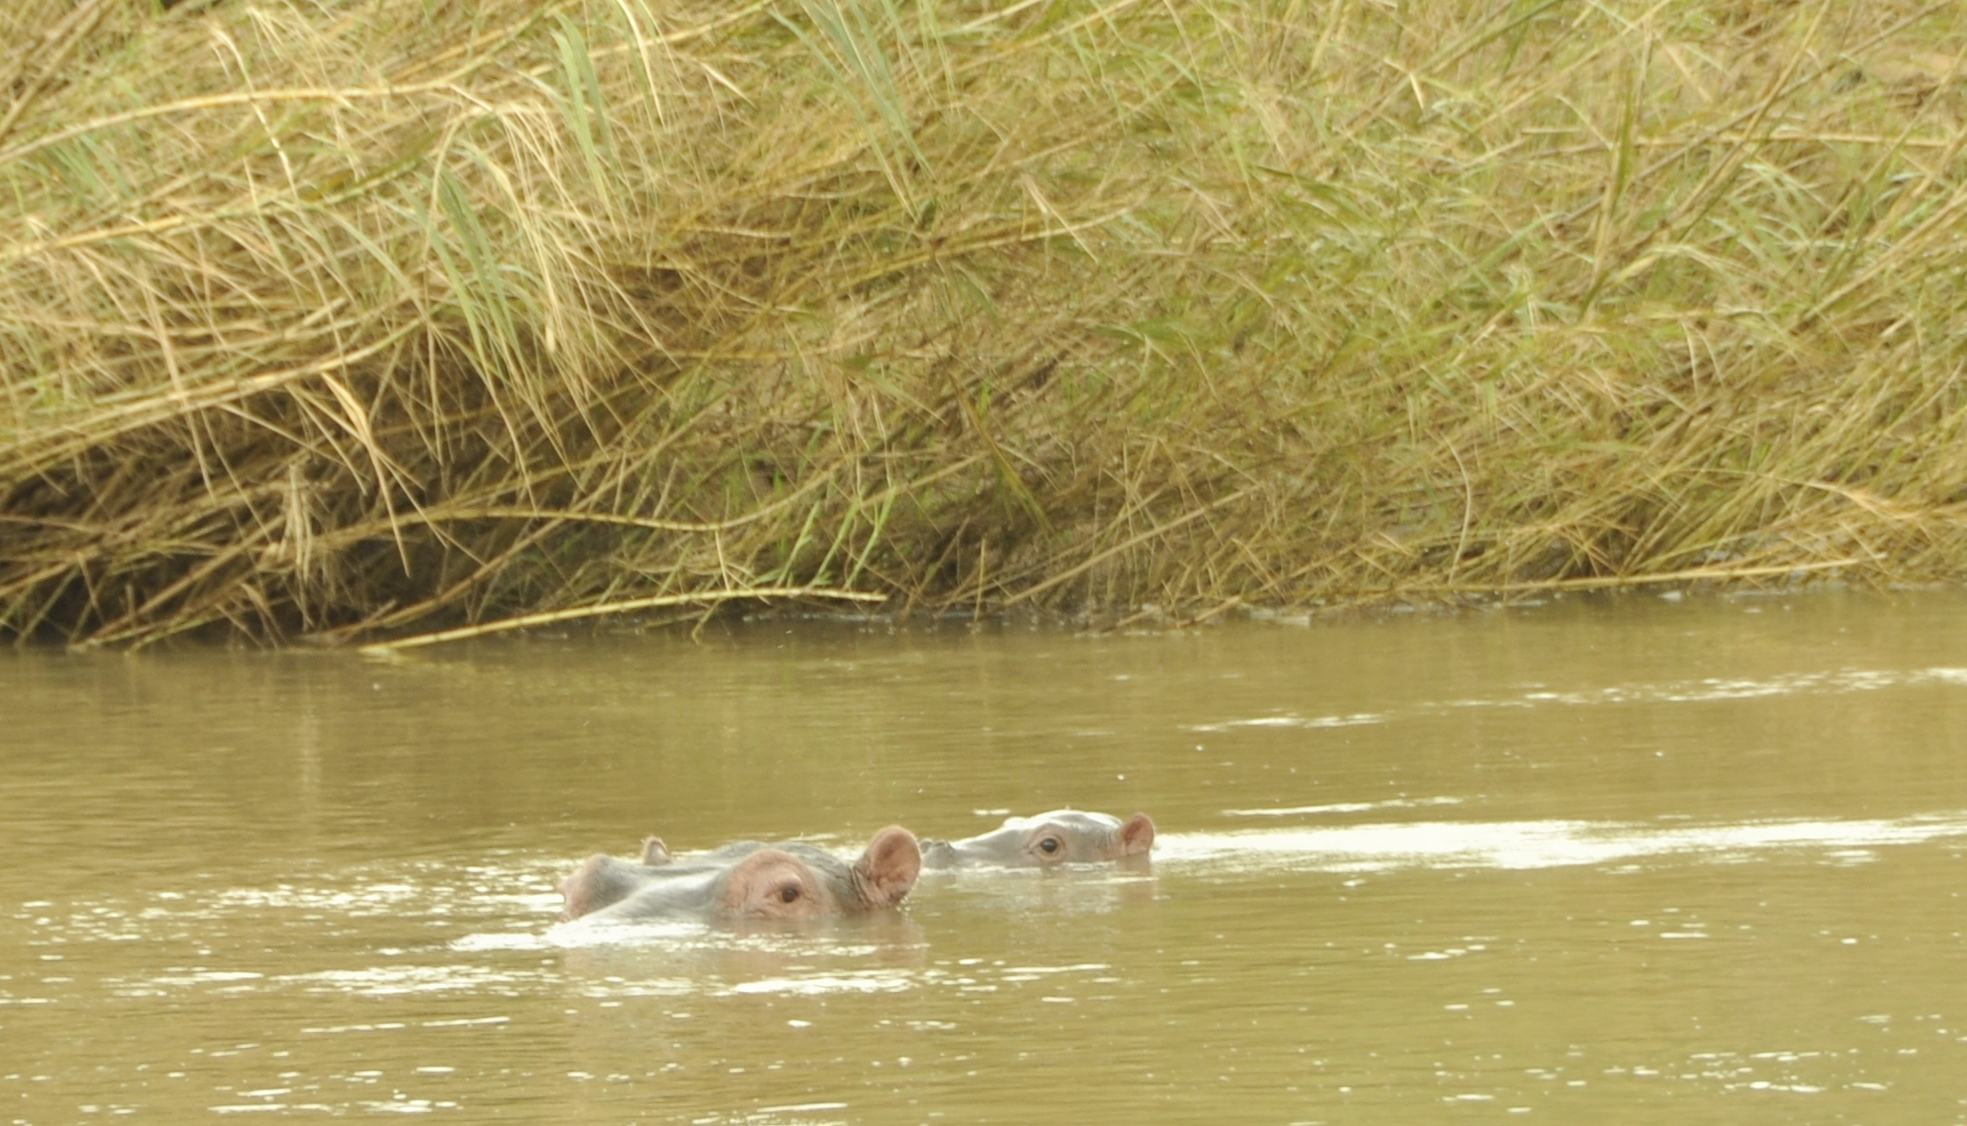 Feb. 16th – The first baby hippo of 2014.